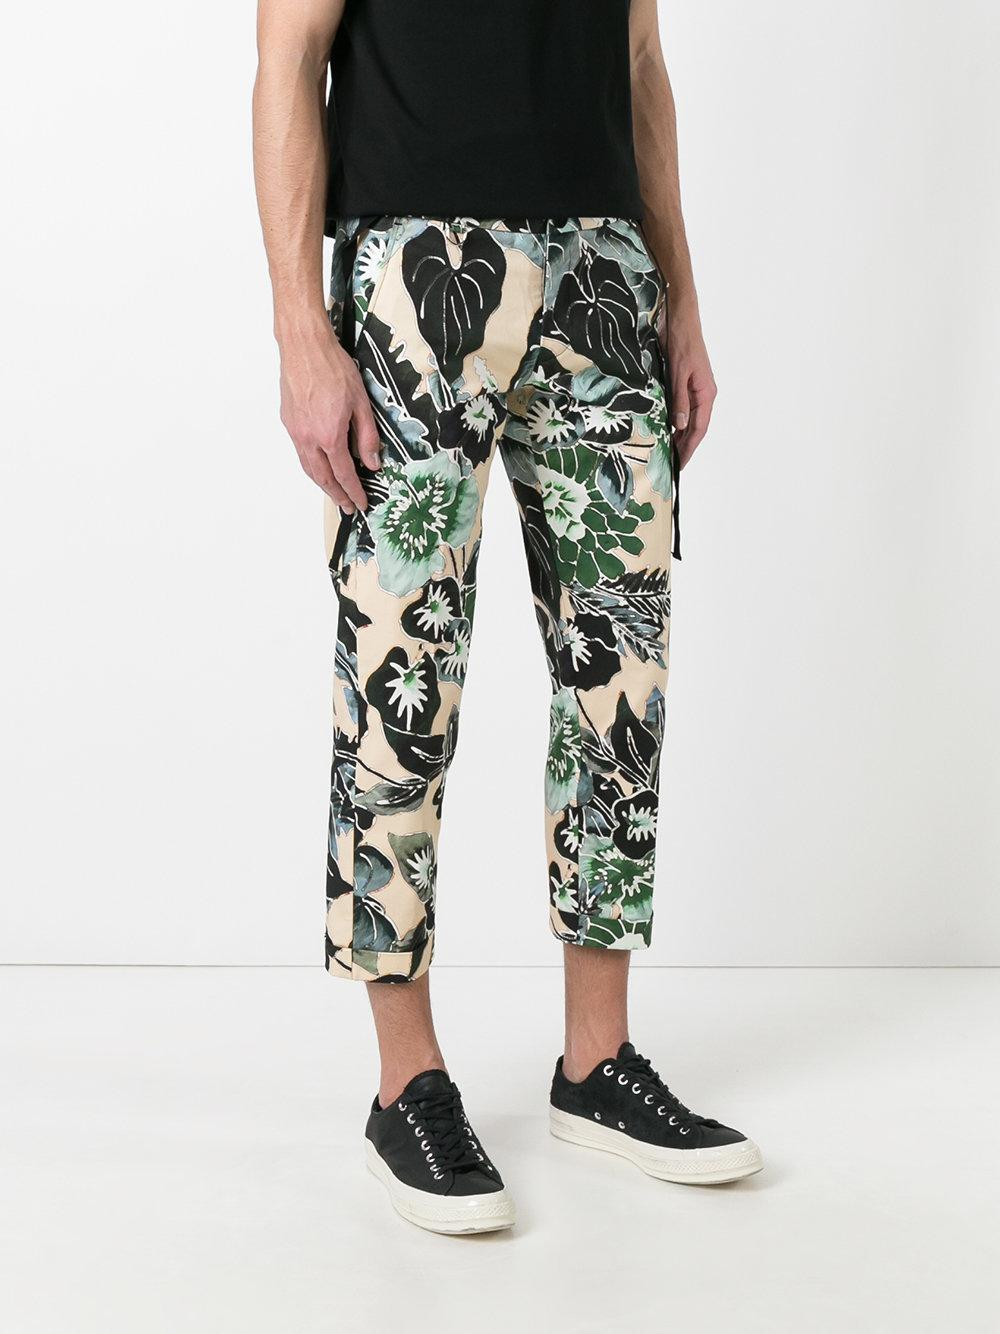 Lyst Christian Pellizzari Floral Cropped Trousers In